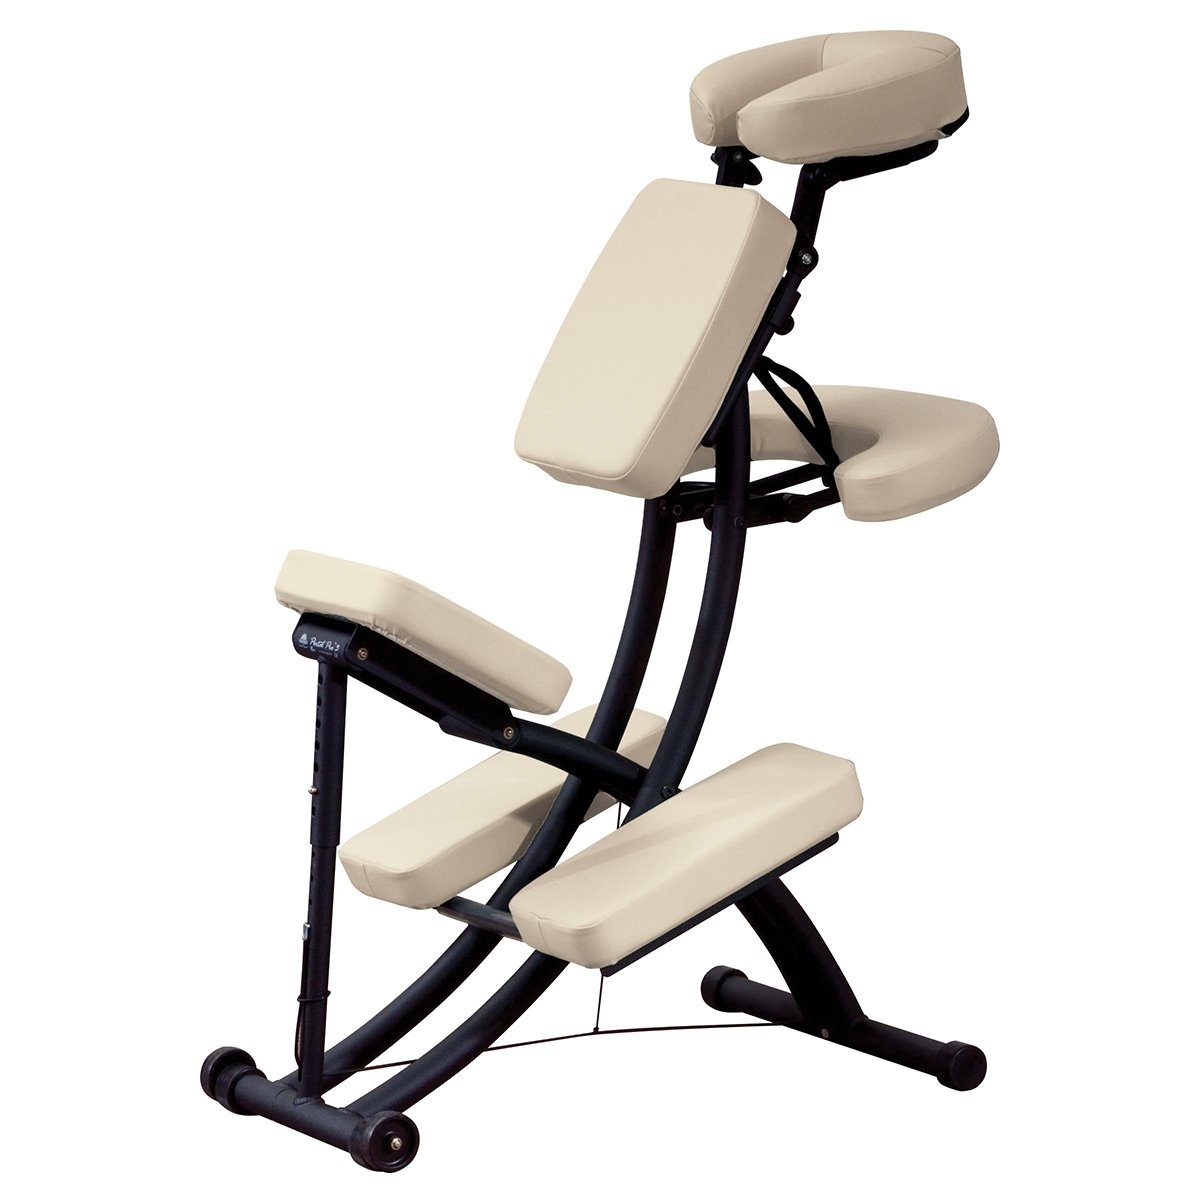 oakworks massage chair